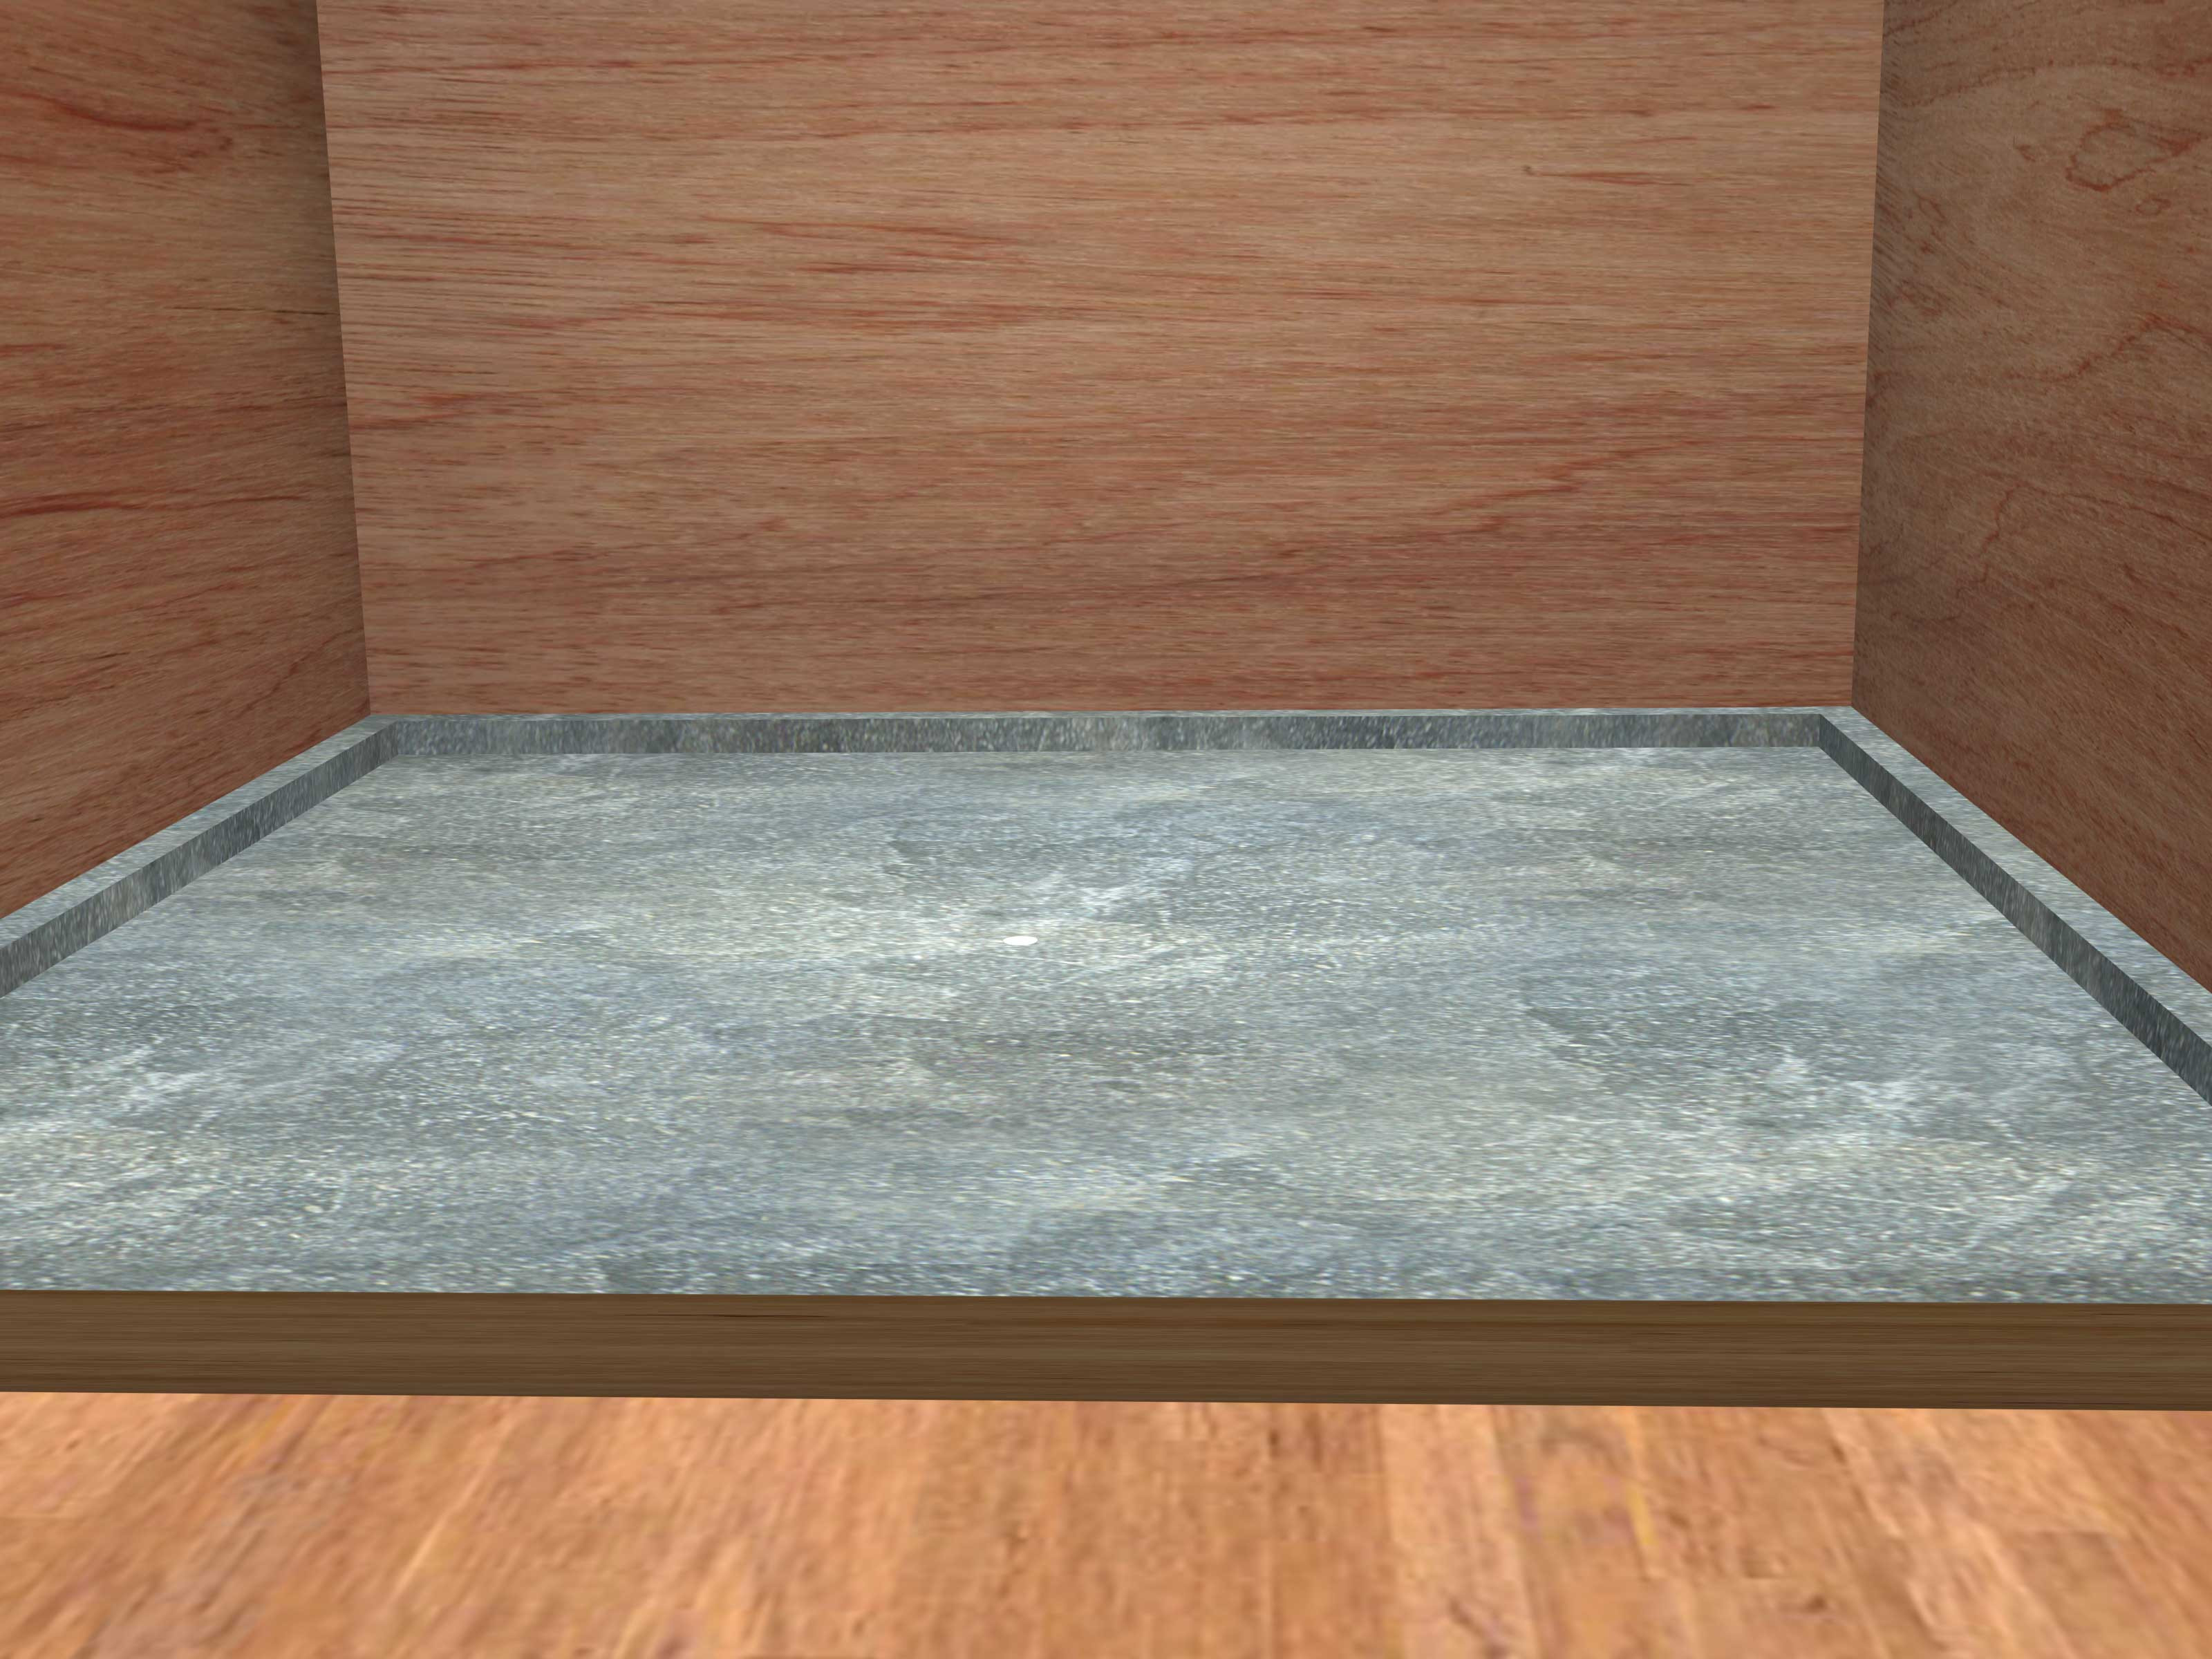 hardwood floor on cement slab of how to make a shower pan 15 steps with pictures wikihow for make a shower pan step 15